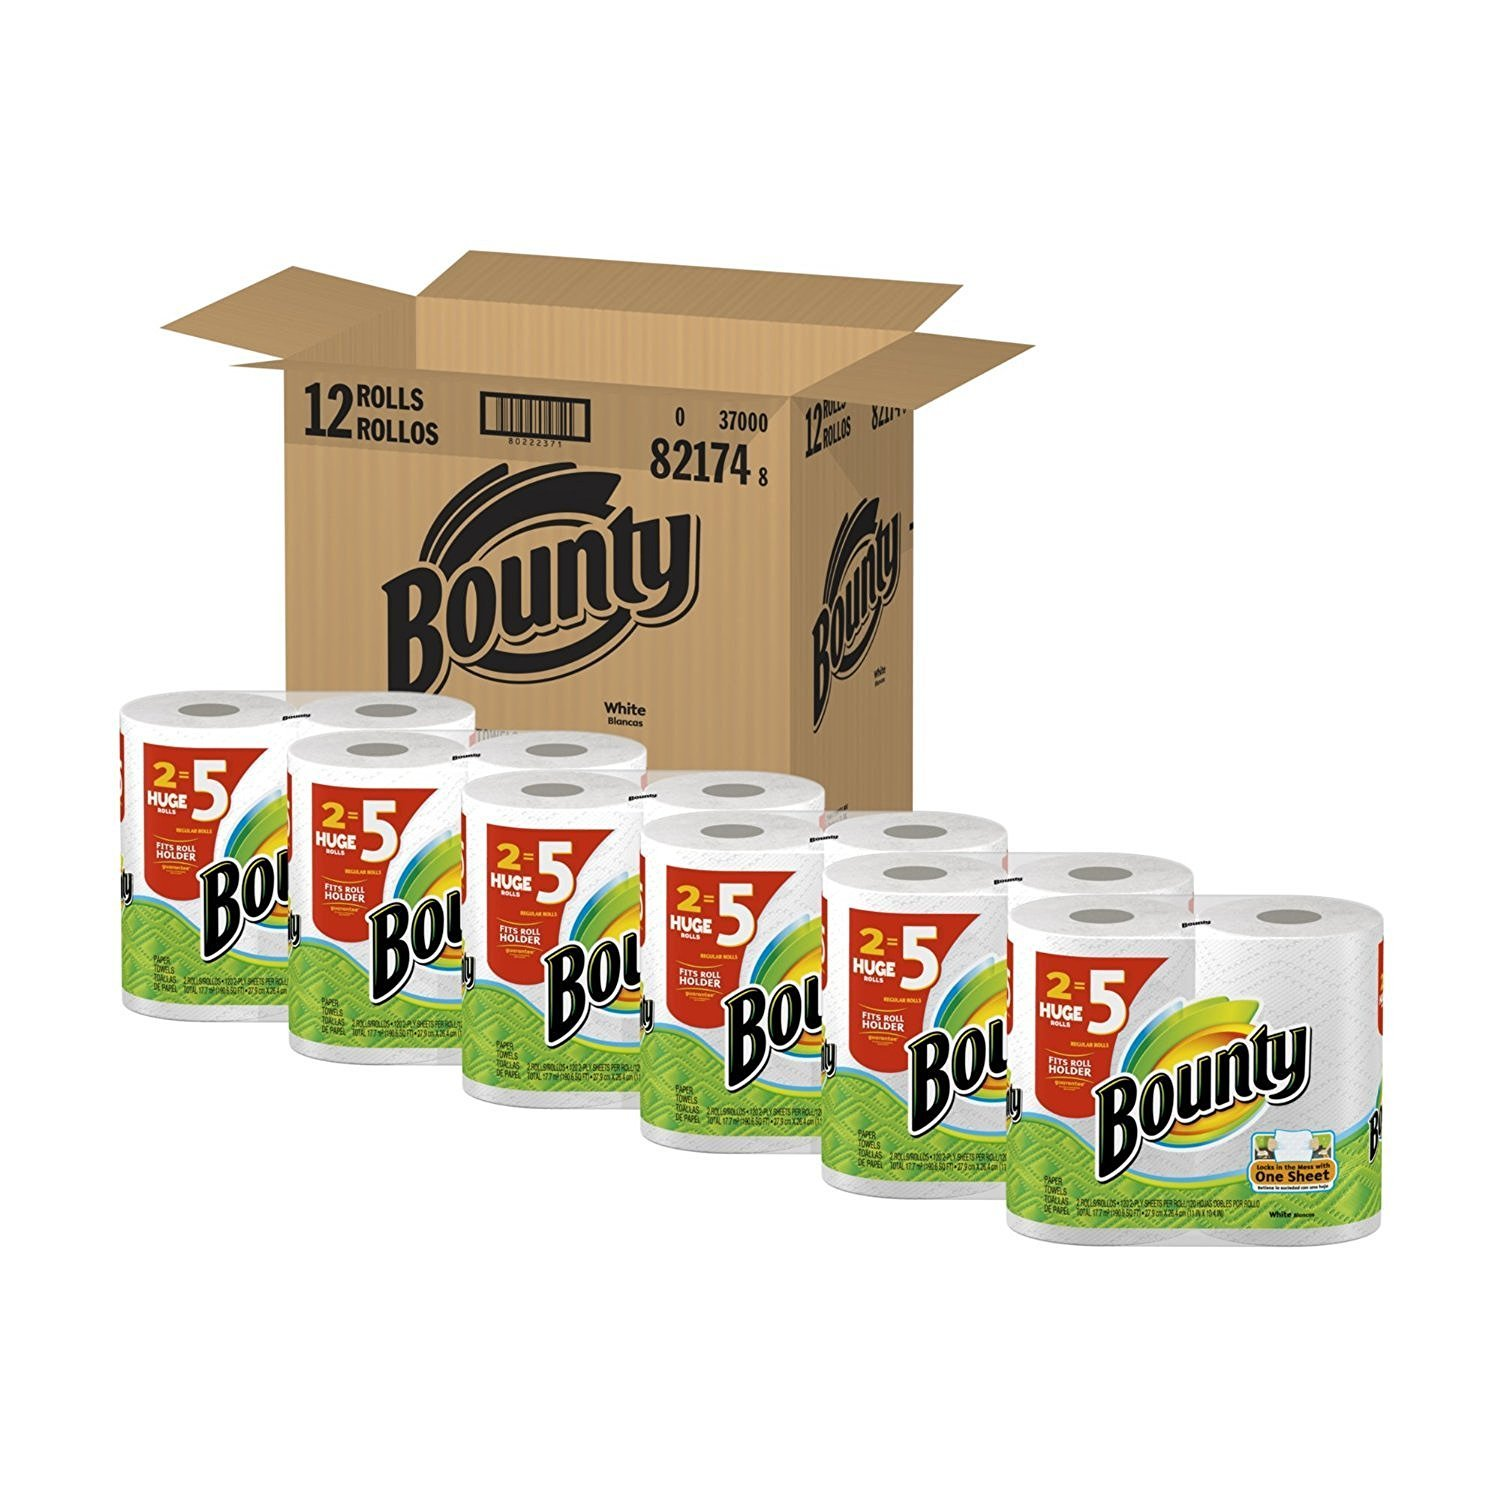 Bounty Paper Towels Huge Rolls (24 Roll Value Size) by Bounty (Image #1)